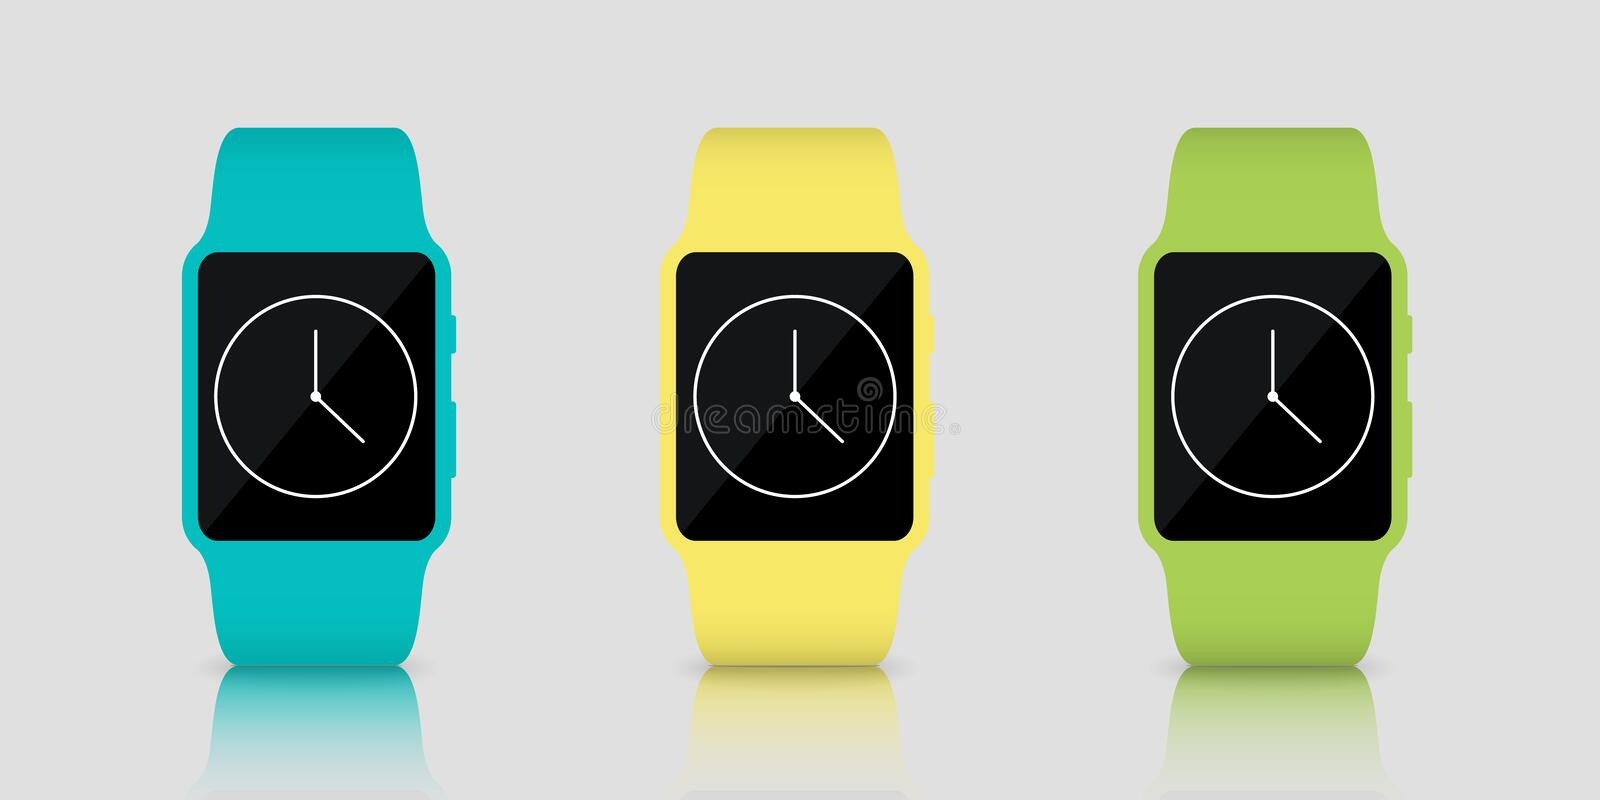 Few colorful smart watches with clock icon. Vector illustration. Green, yellow and blue smart watches on mirror surface royalty free illustration